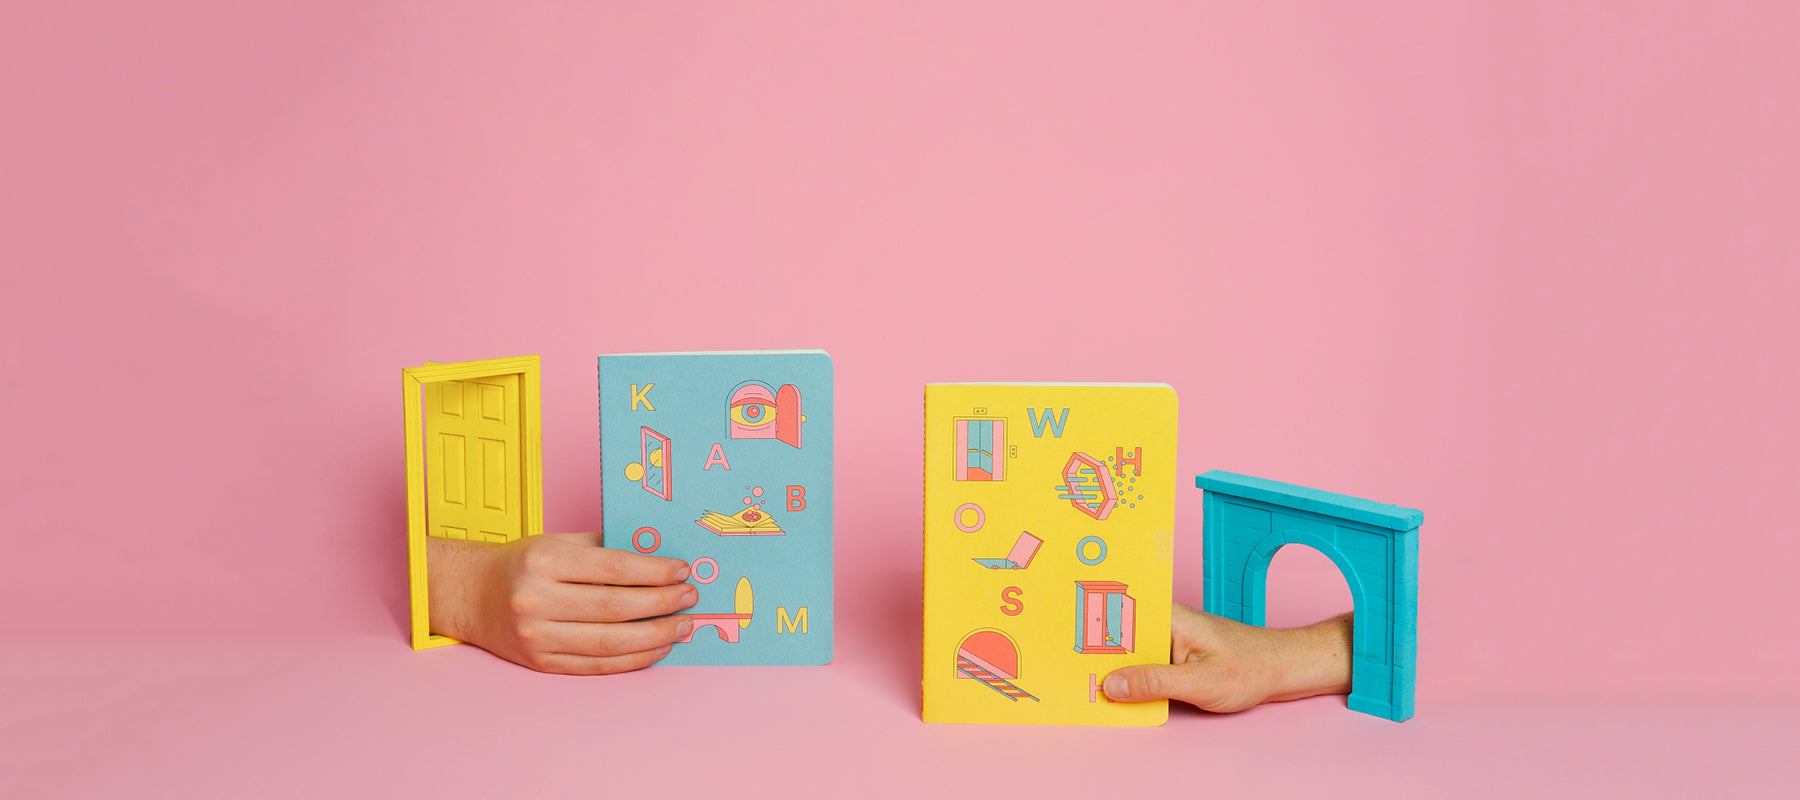 Blue and yellow portals softcover notebooks